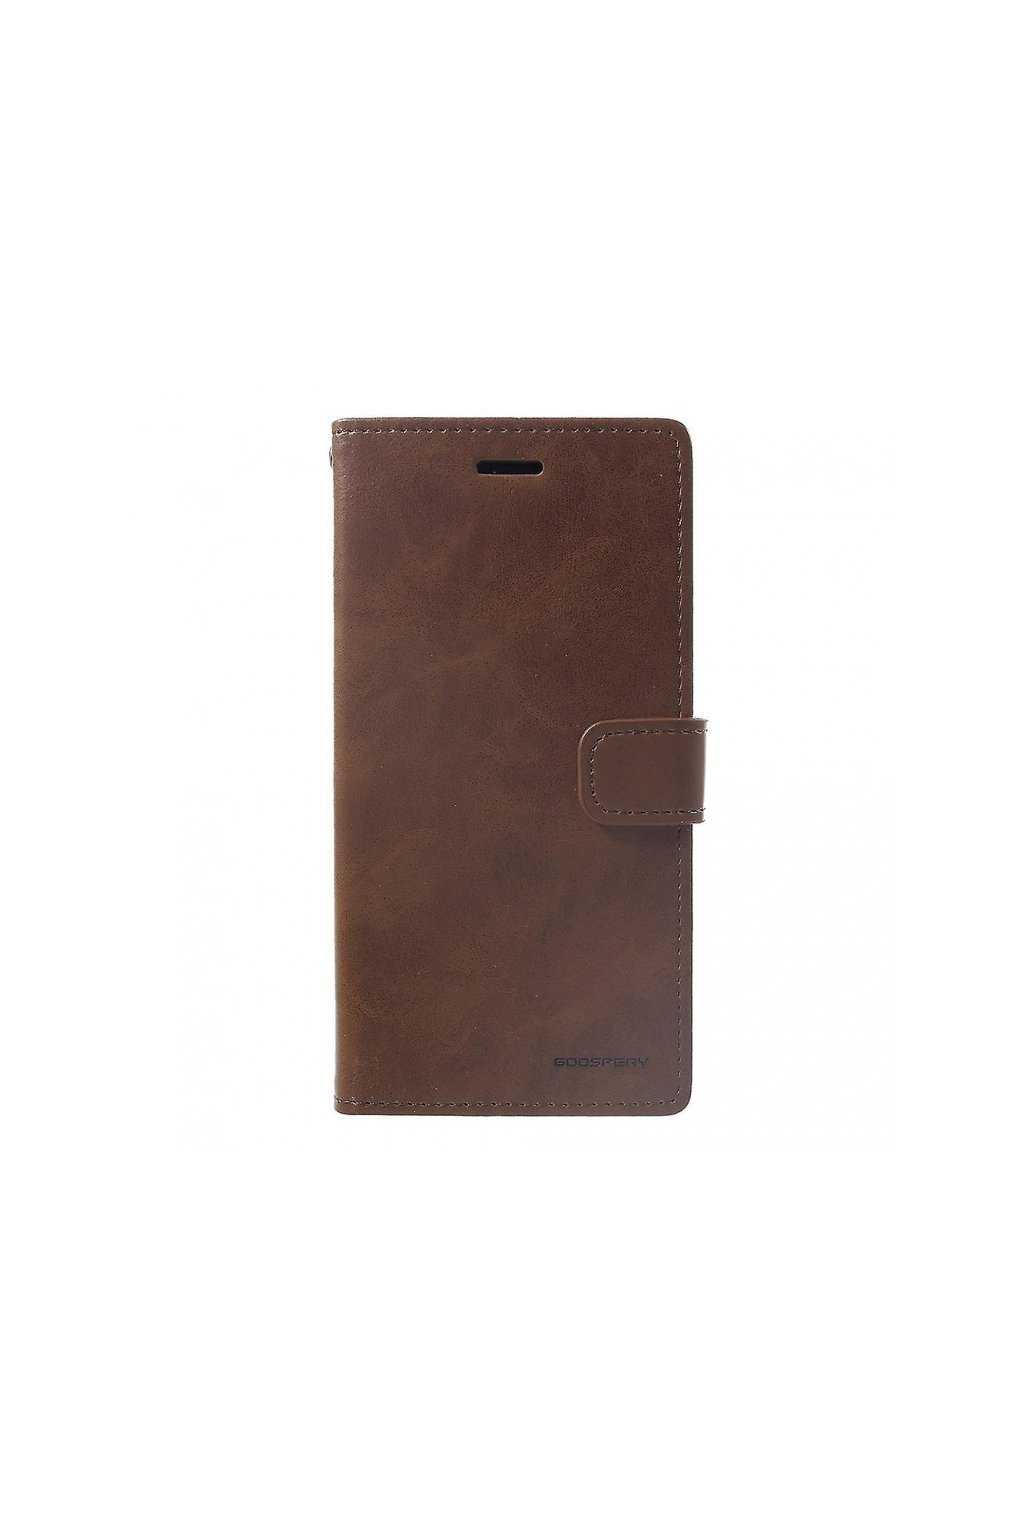 17093 pouzdro kryt pro iphone xr mercury bluemoon diary brown